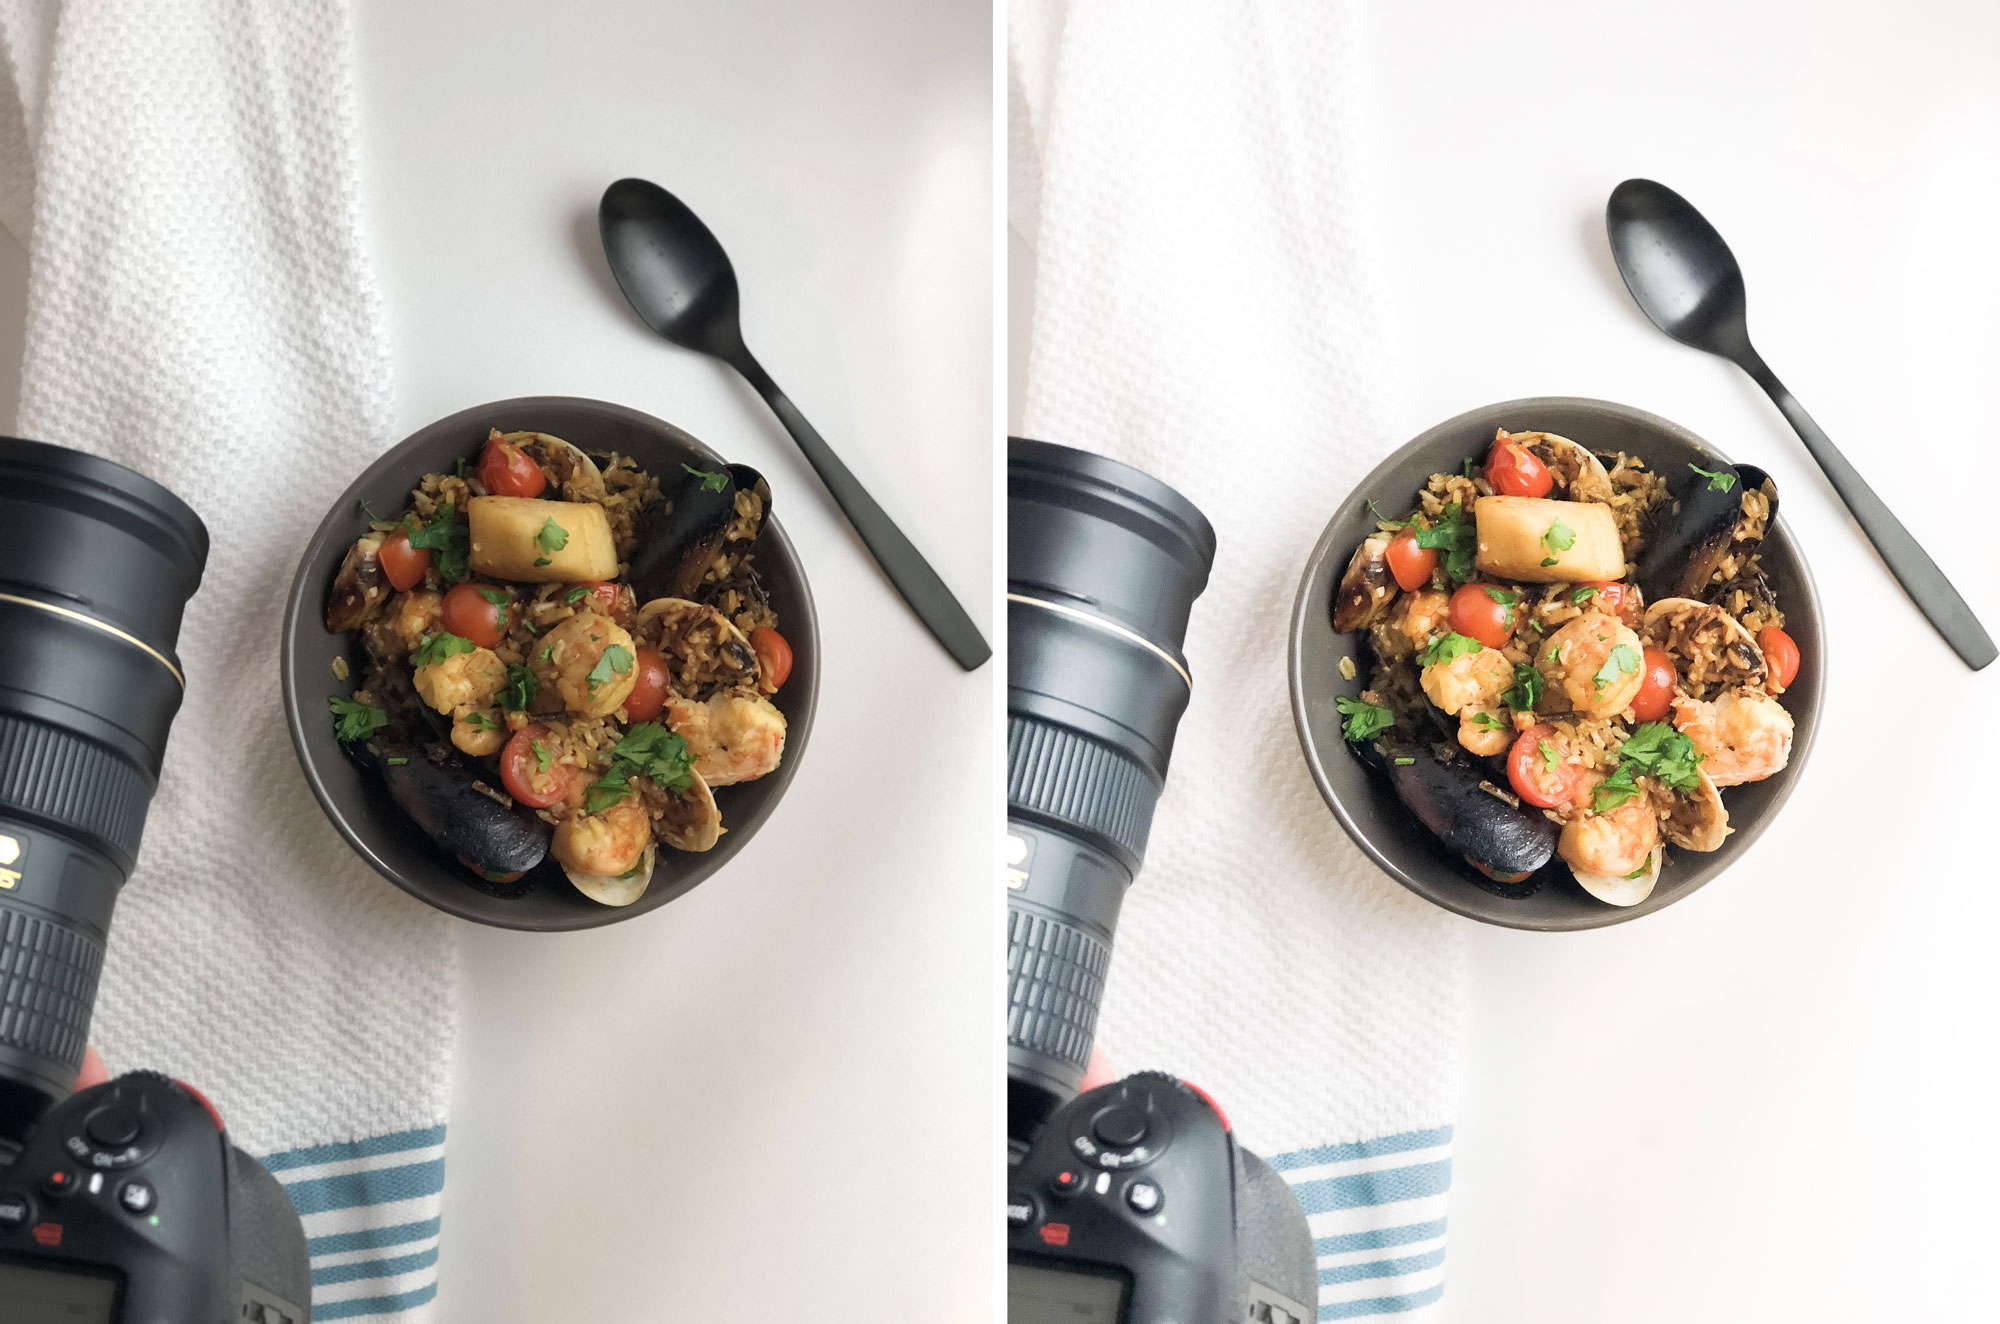 food-photography-before-and-after.jpg